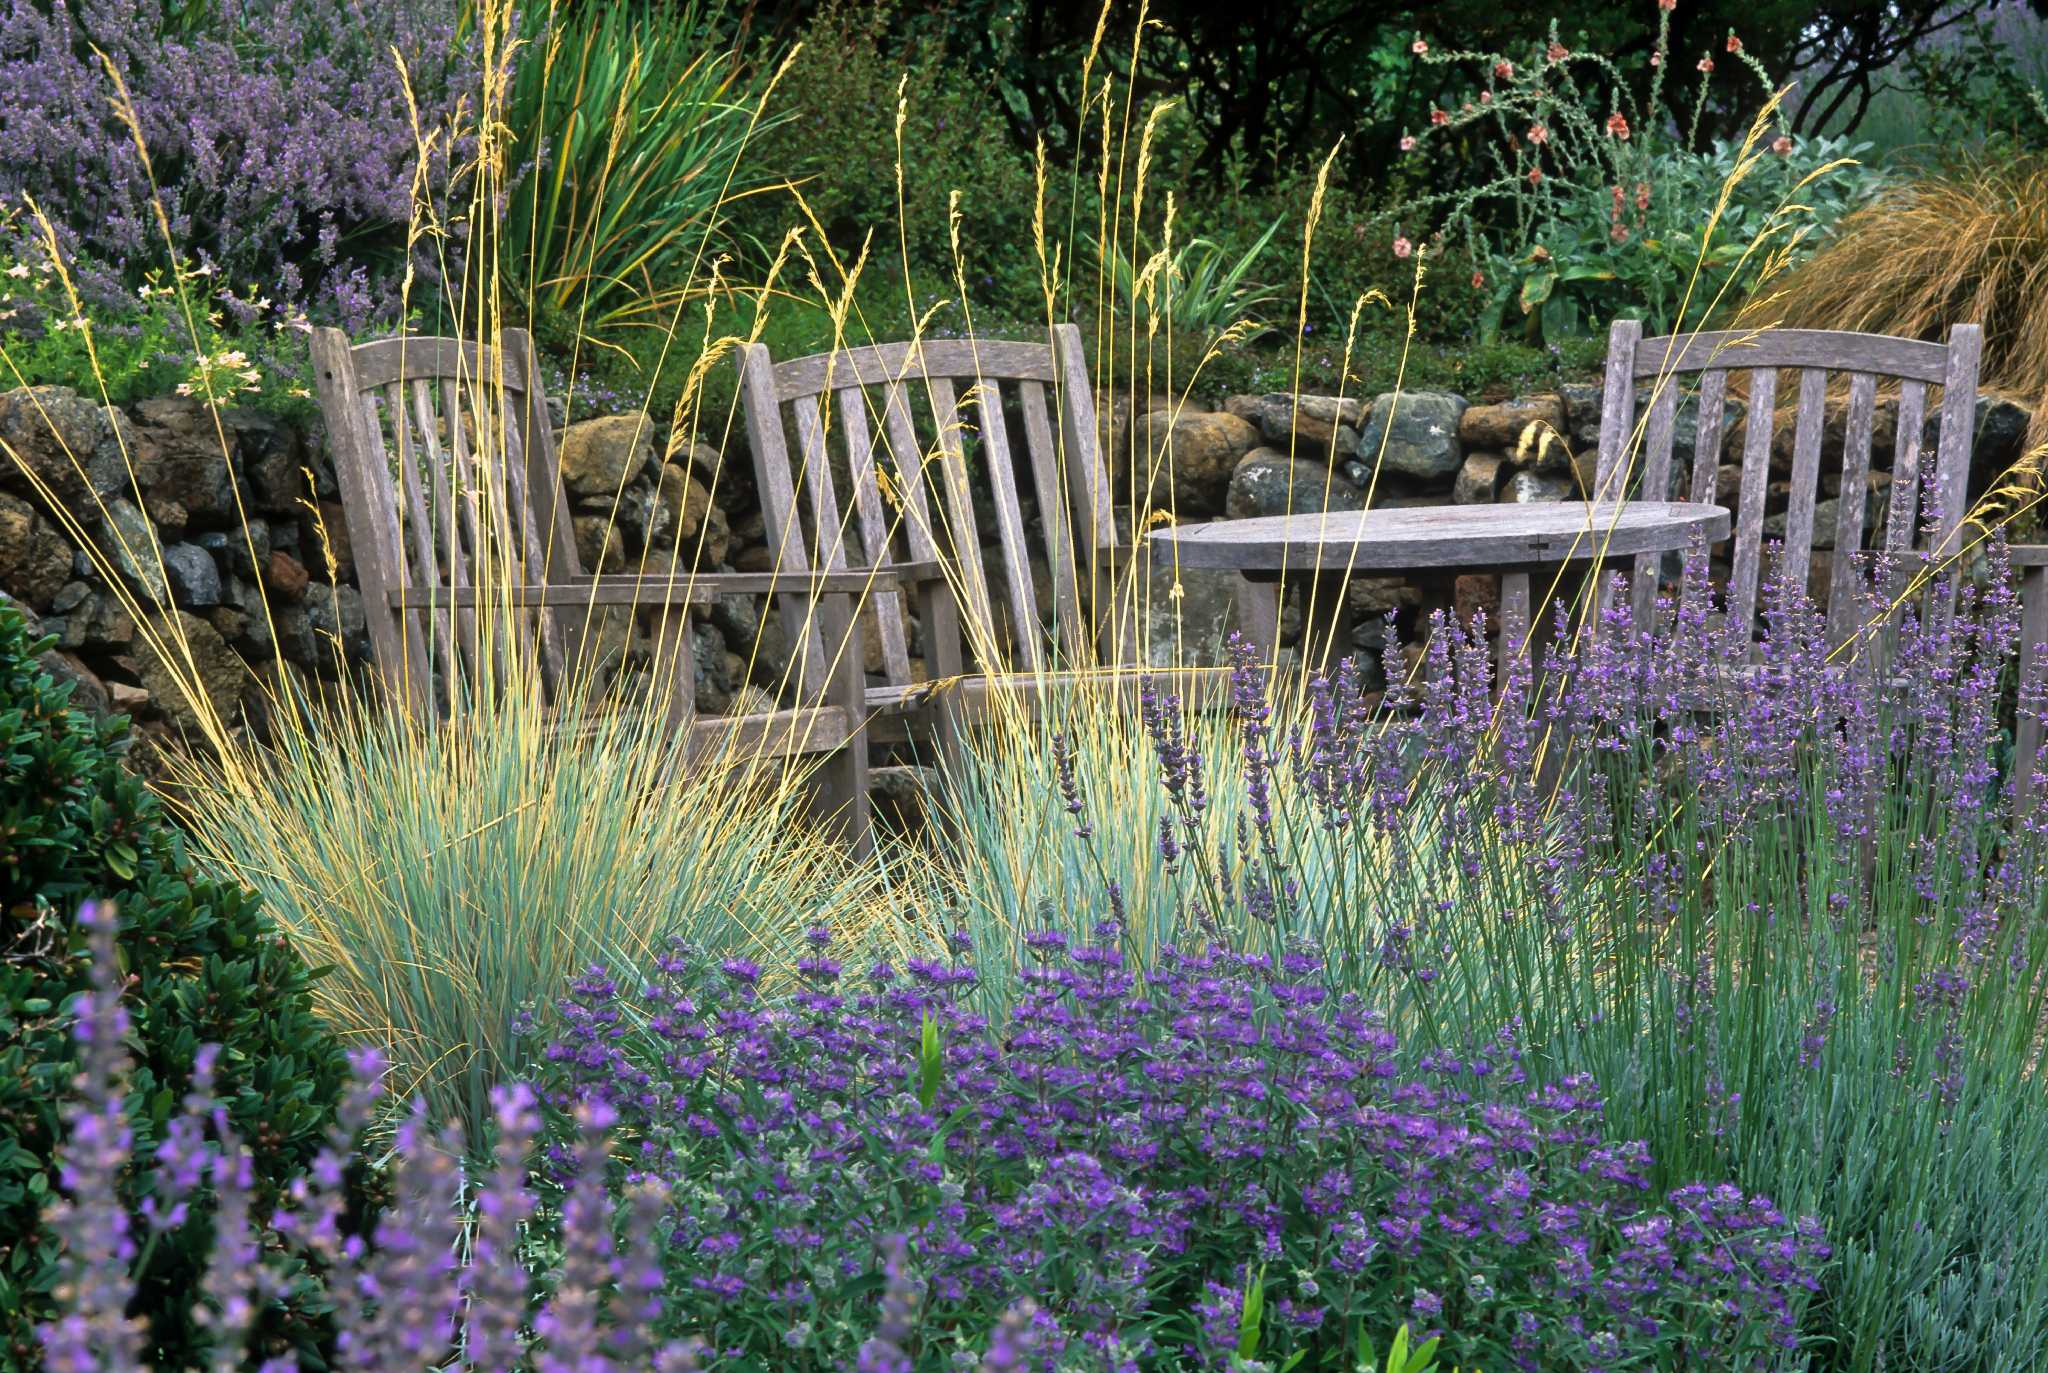 Ornamental grasses capture attention with easy beauty for Long grass in garden